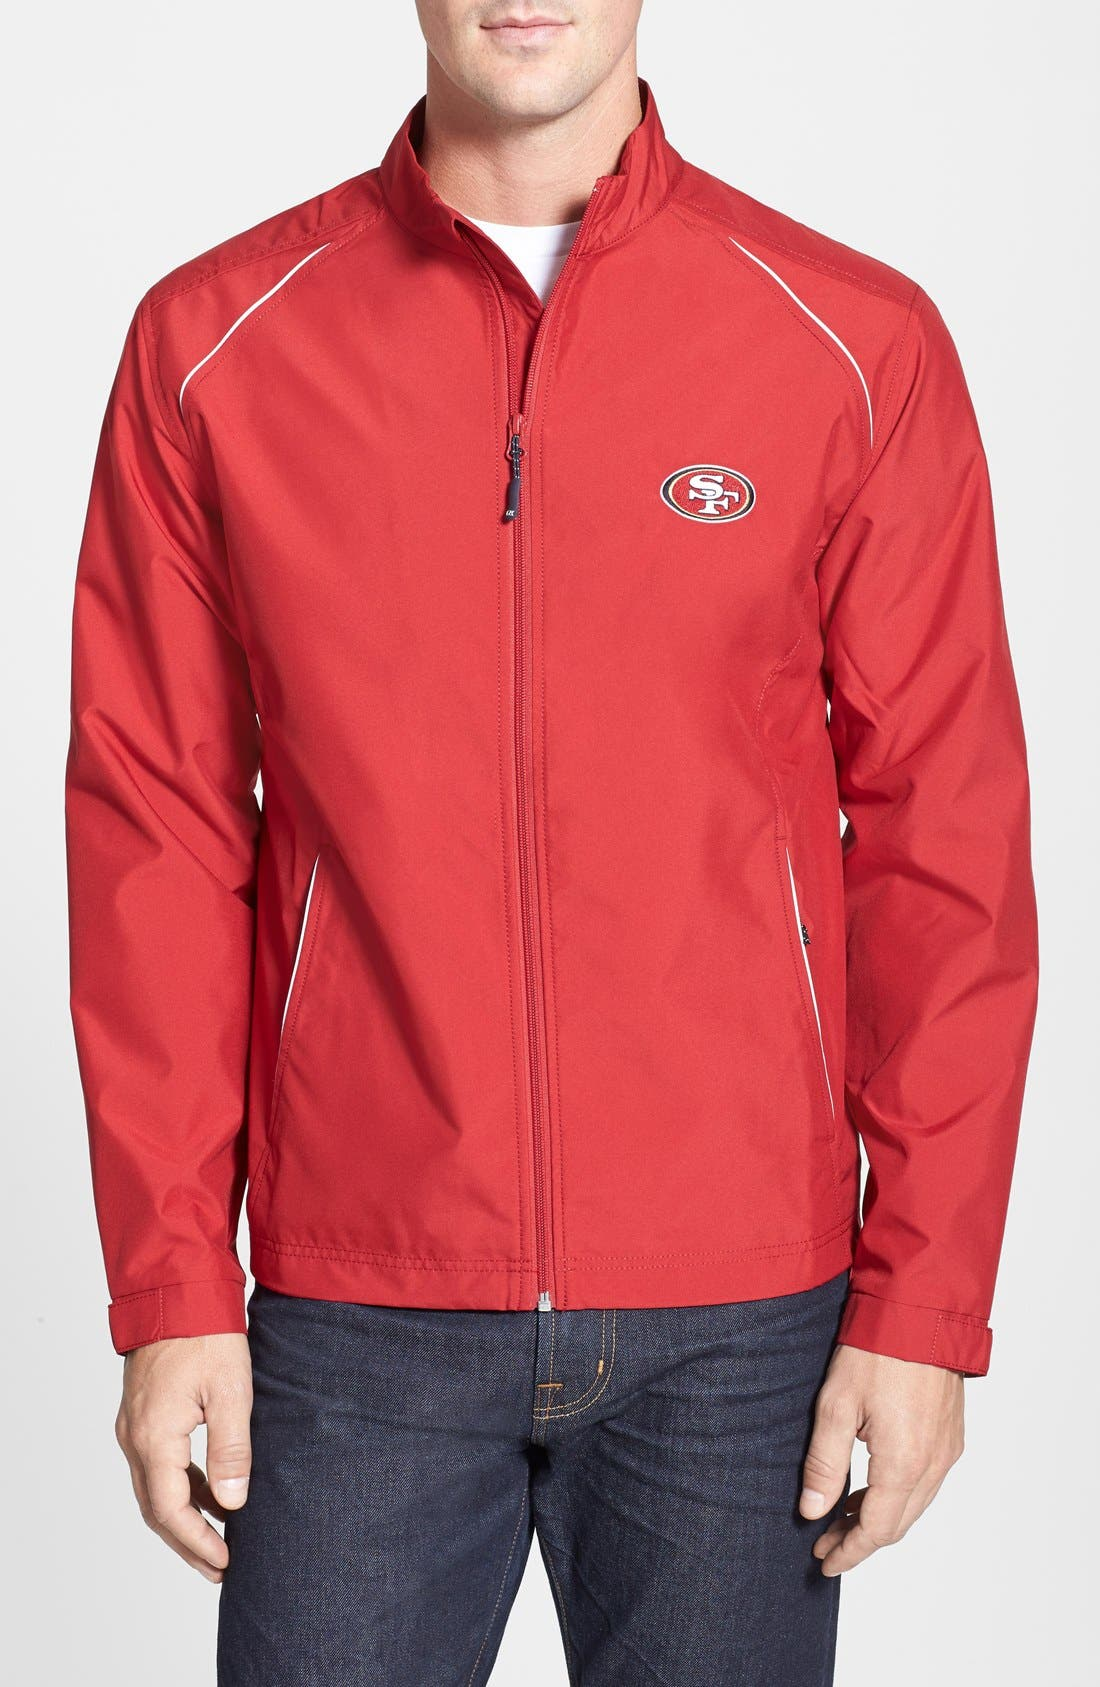 San Francisco 49ers - Beacon WeatherTec Wind & Water Resistant Jacket,                         Main,                         color, 613